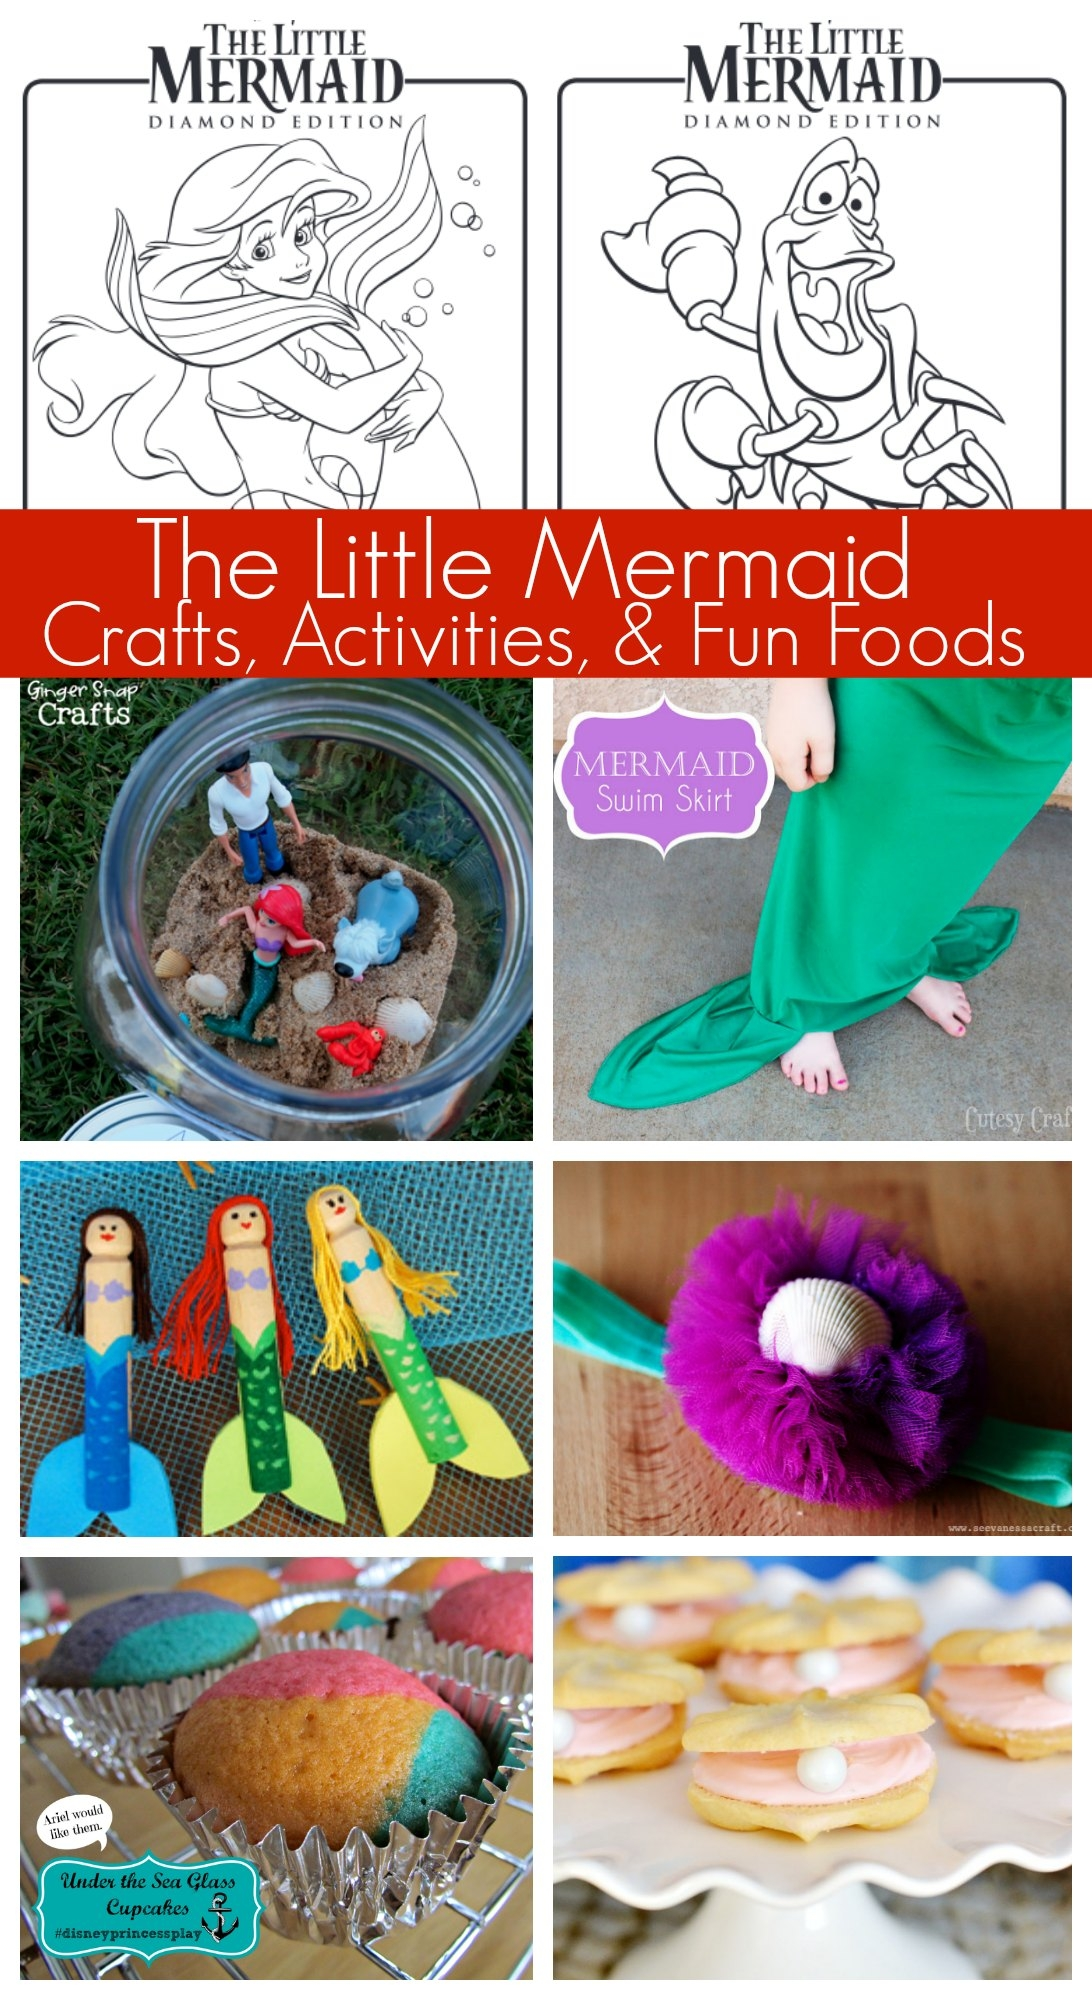 ariel mermaid coloring pages - disneys the little mermaid coloring pages activities crafts movie giveaway